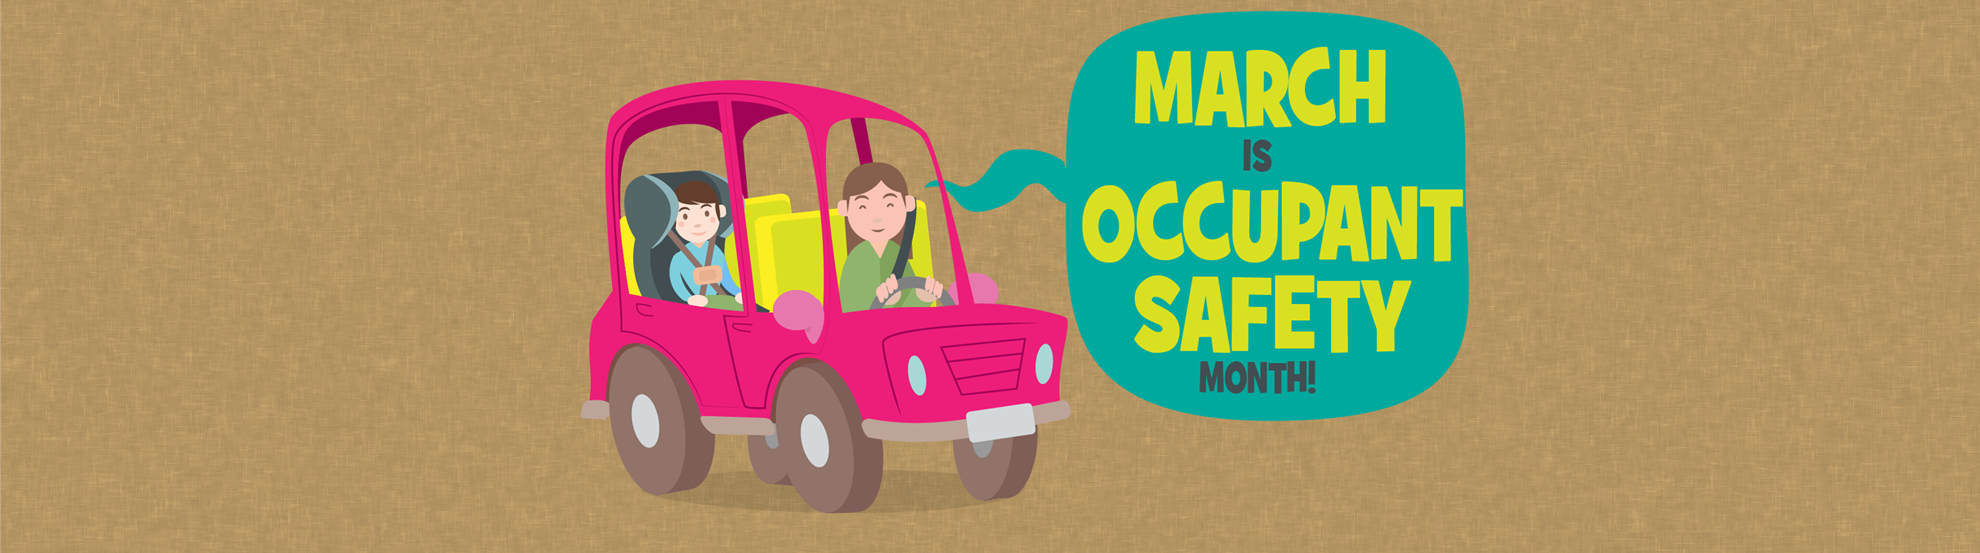 occupant safety